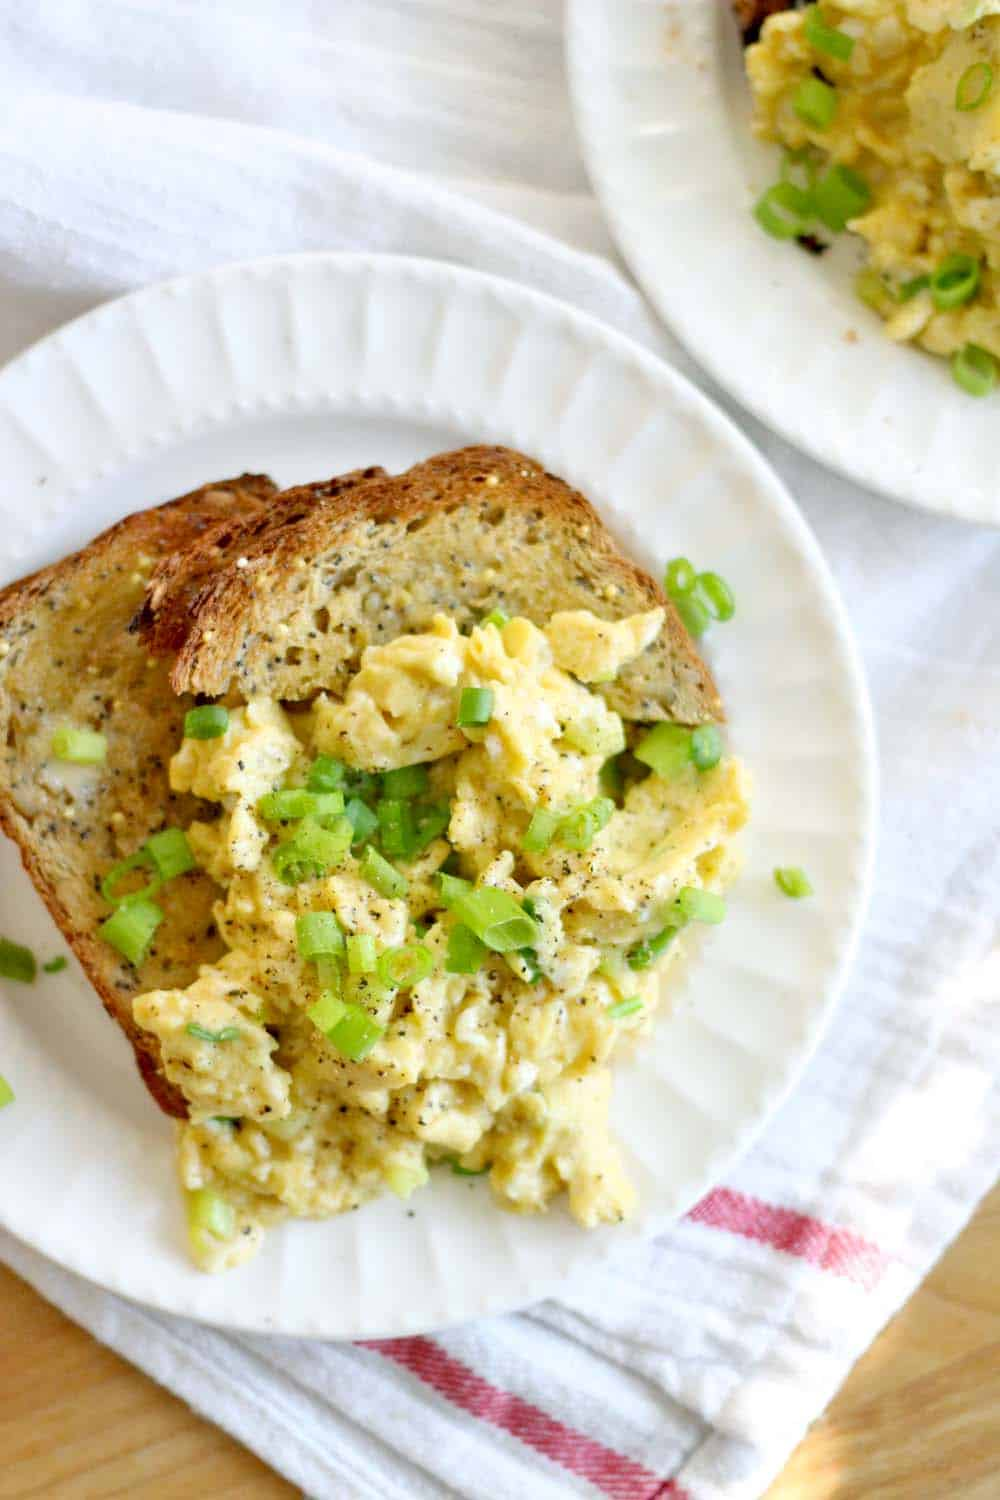 These soy sauce and green onion scrambled eggs are melt-in-your-mouth delicious and take only 5 minutes to make! The perfect low carb, high protein breakfast to get you going for the day.